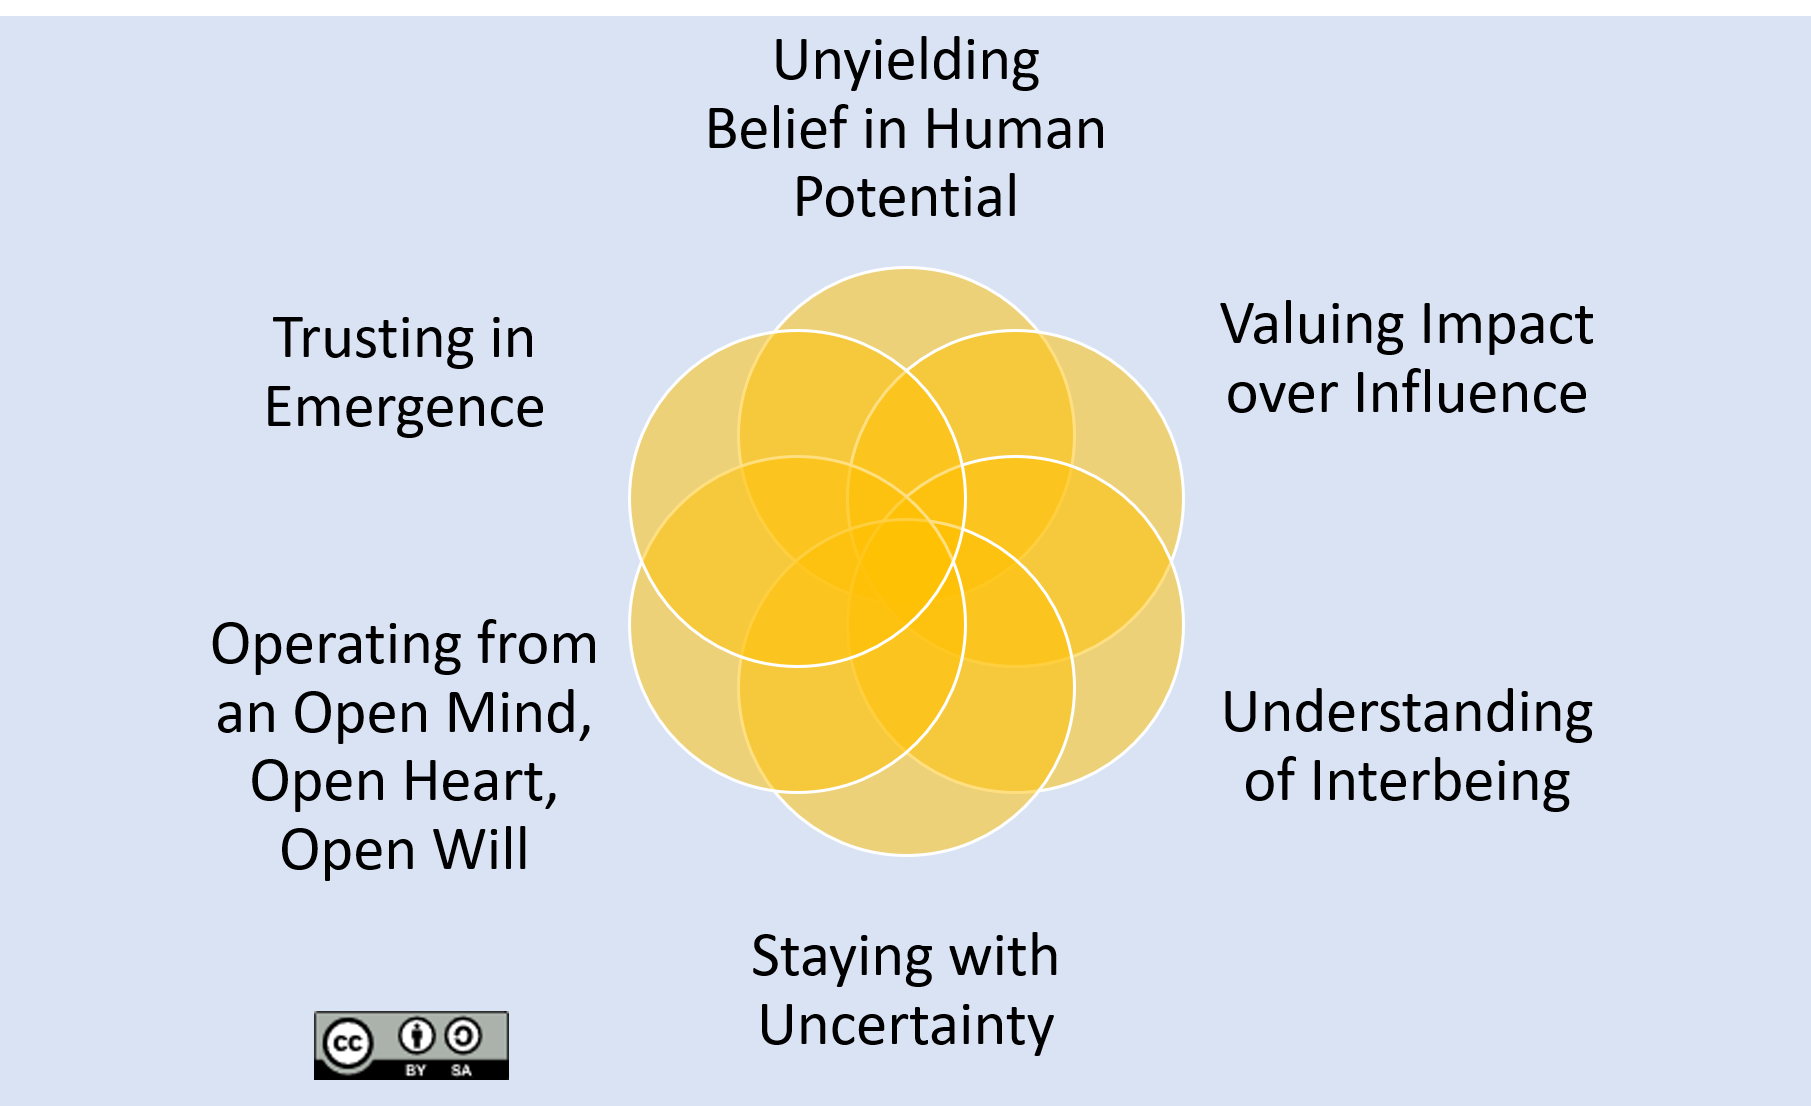 How to Lead in Uncertain Times - Emerge